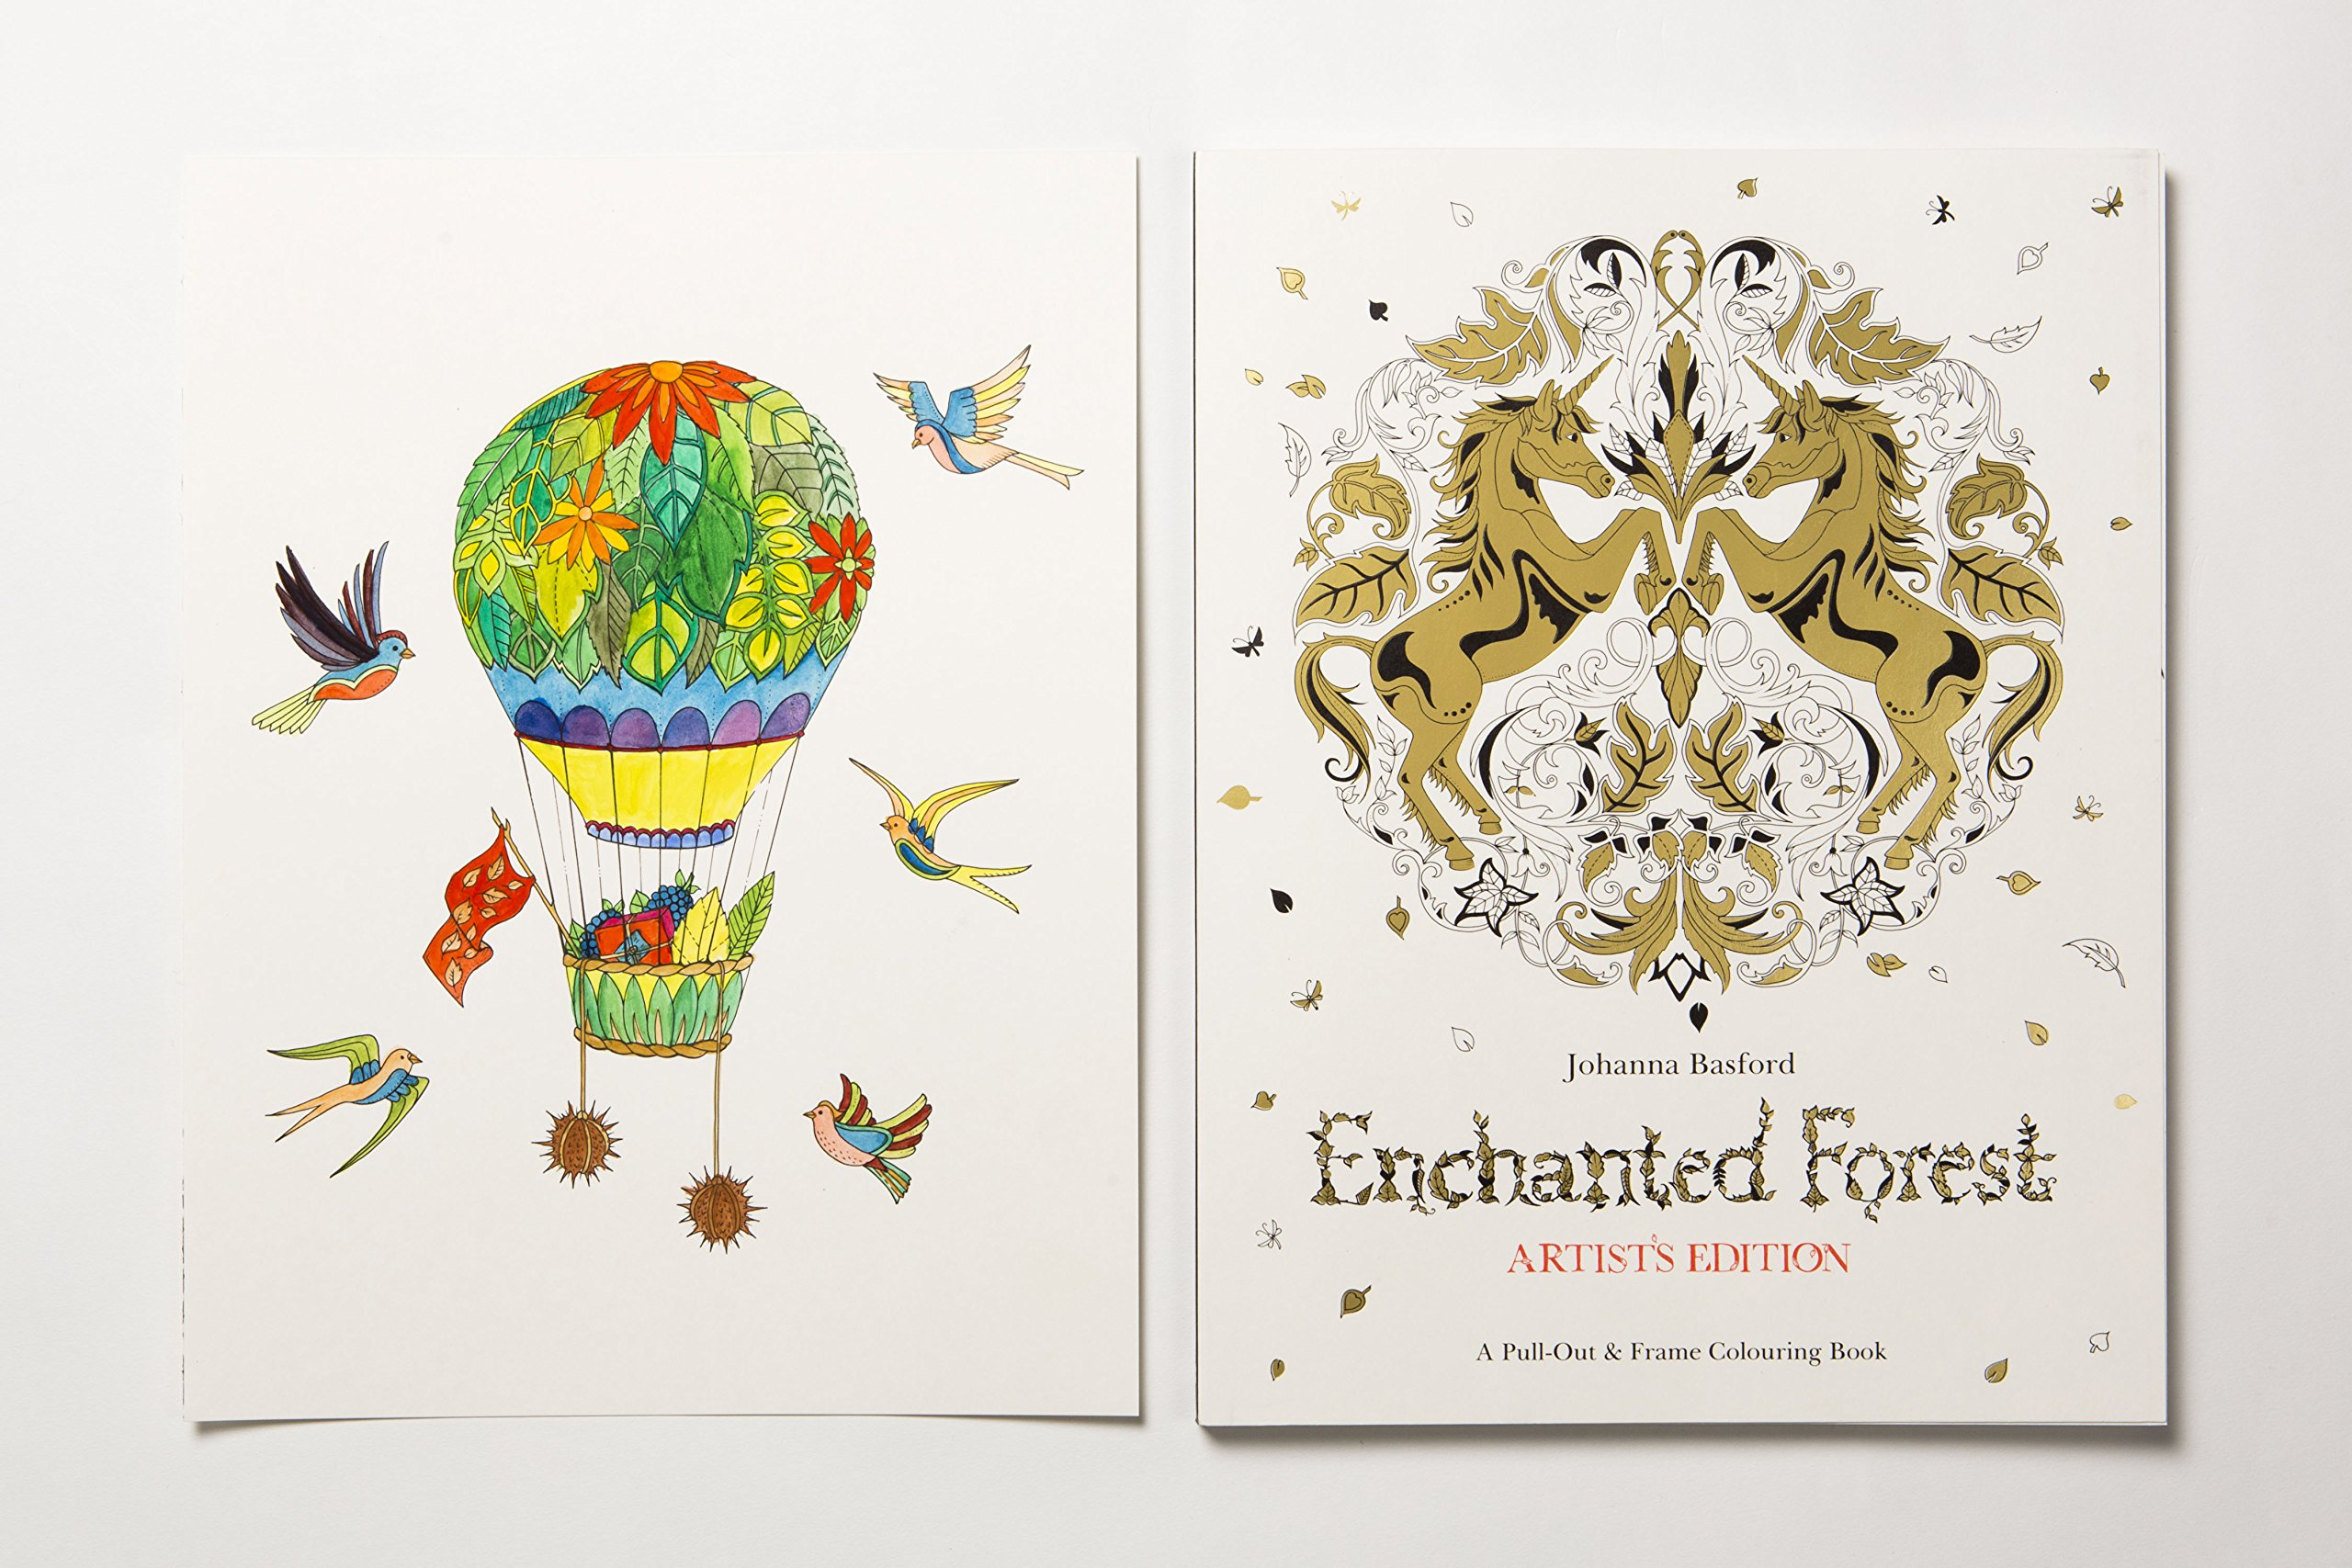 Enchanted Forest Artists Edition A Pull Out And Frame Colouring Book Bks Amazoncouk Johanna Basford 9781780677842 Books